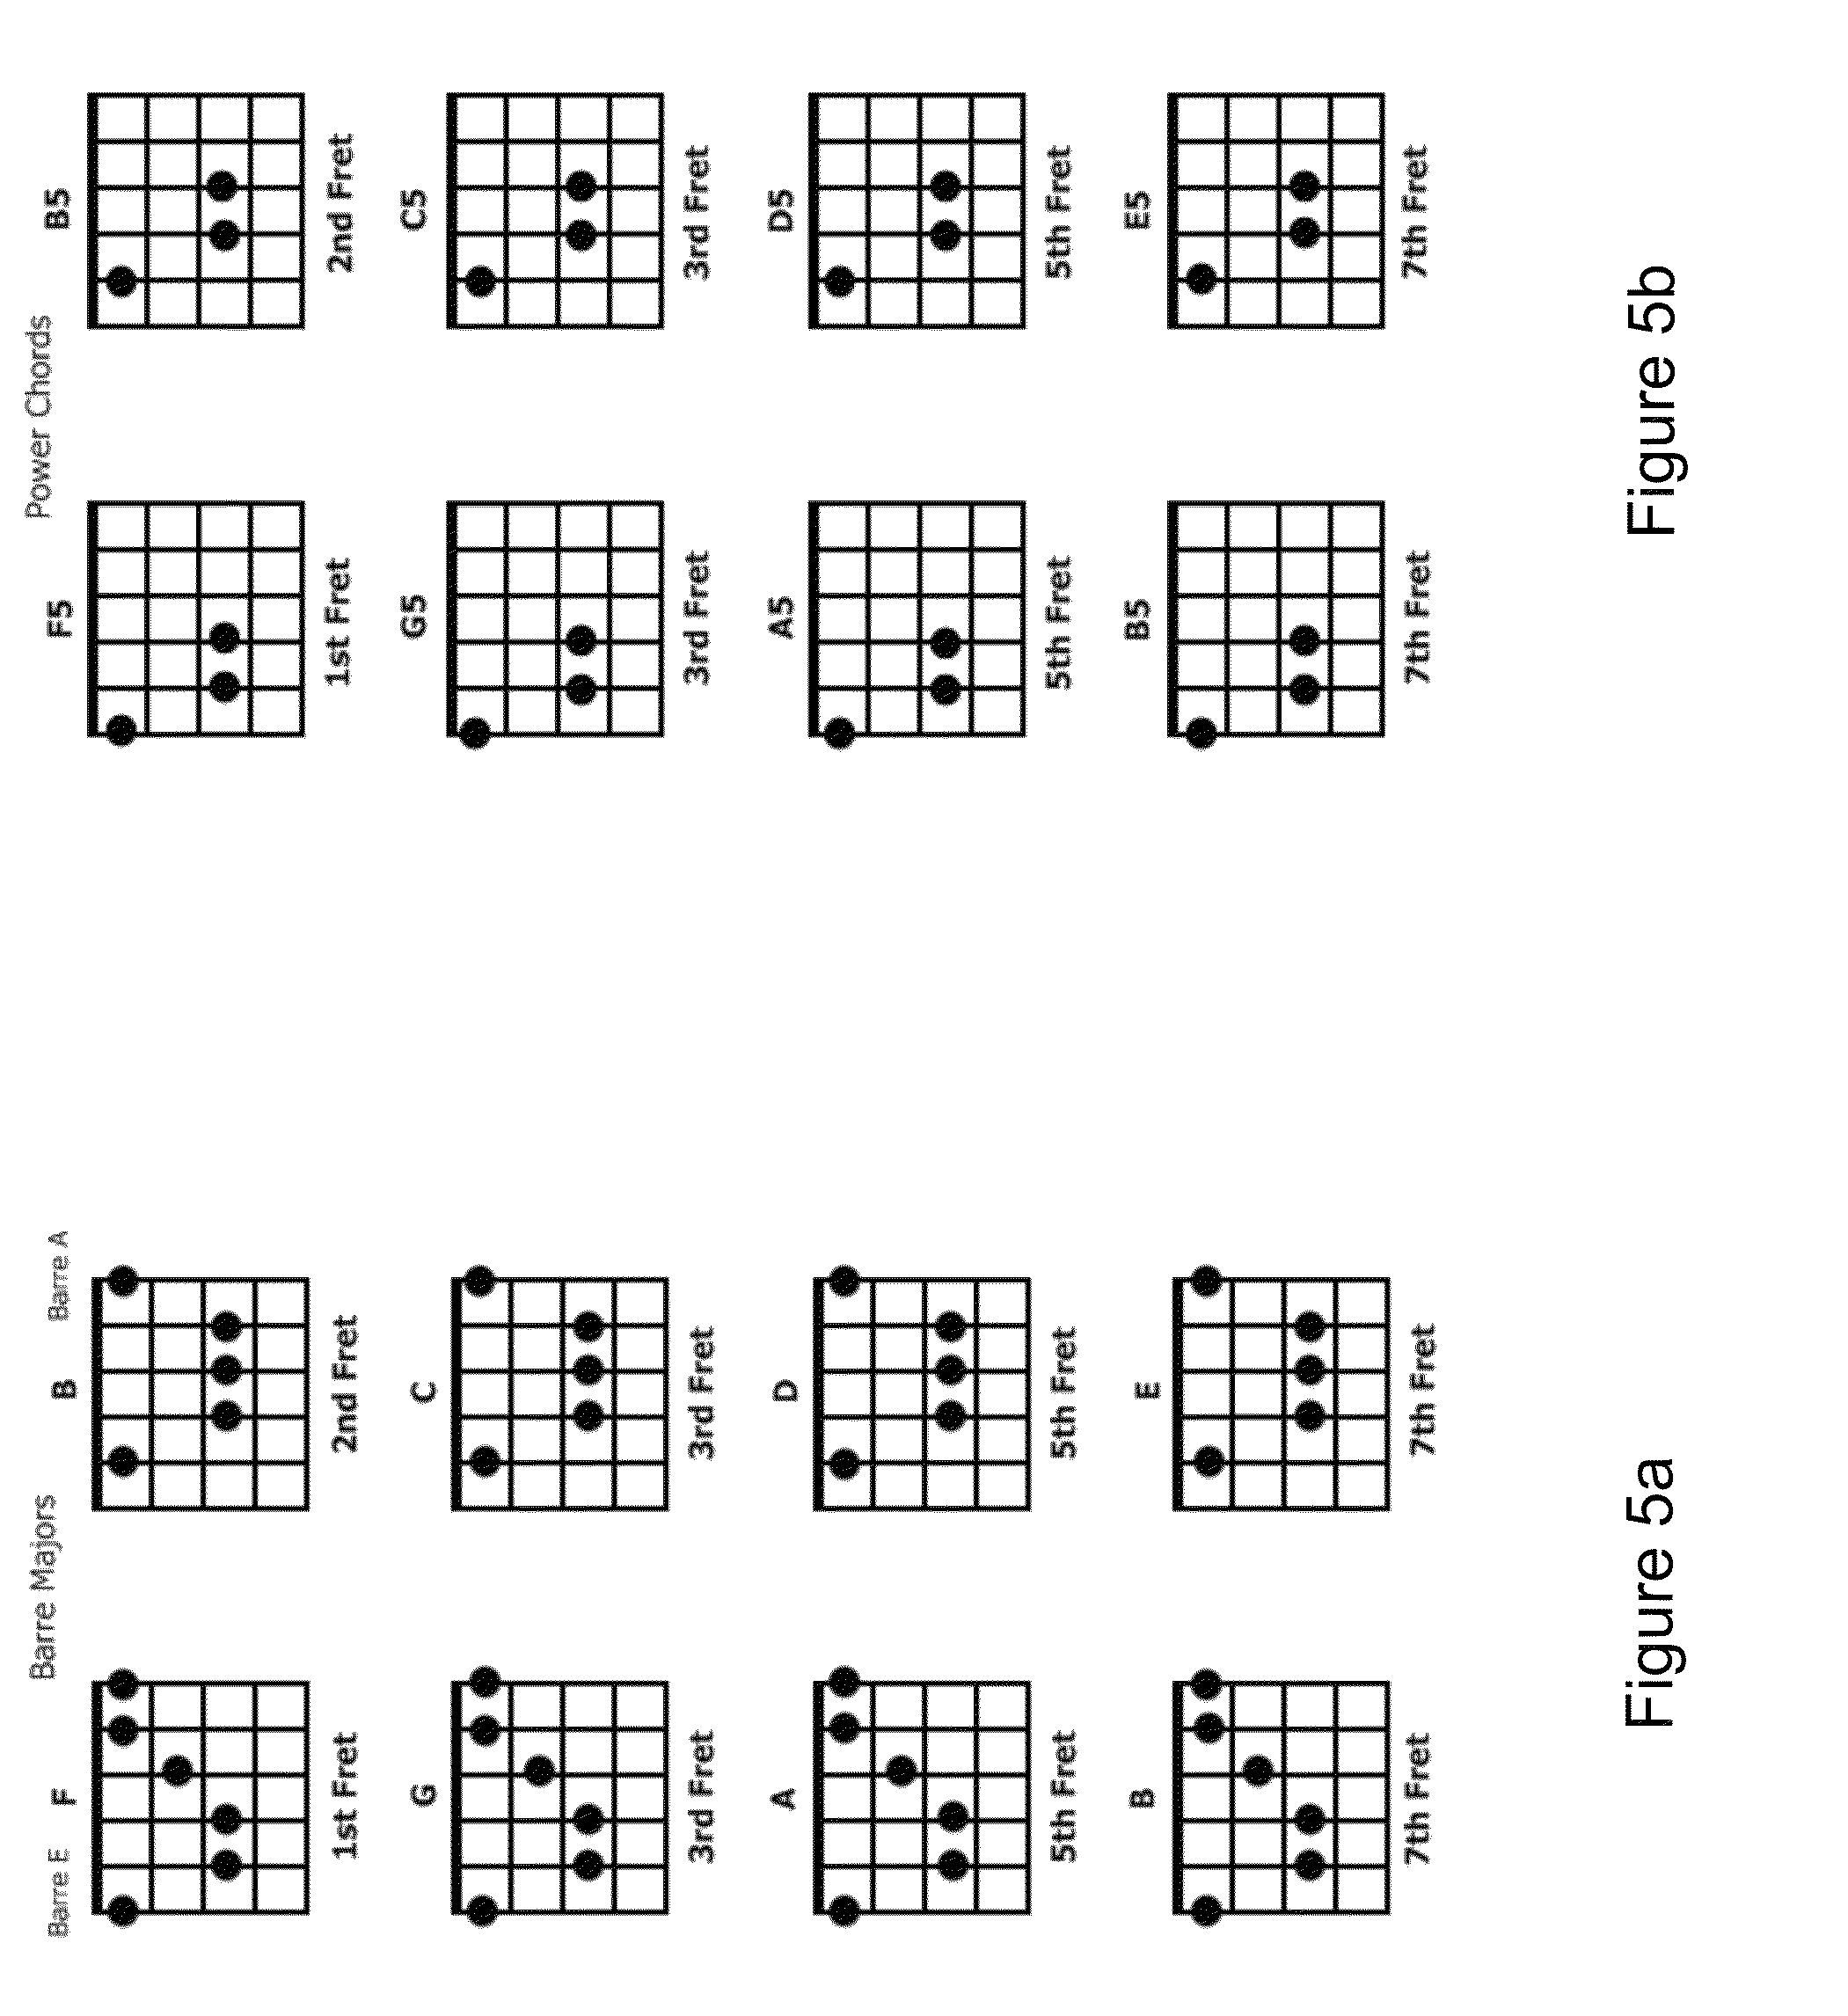 Guitar chords finger placement guitar collection ideas b minor guitar chord easy 3 ways to play real lessons hexwebz Images